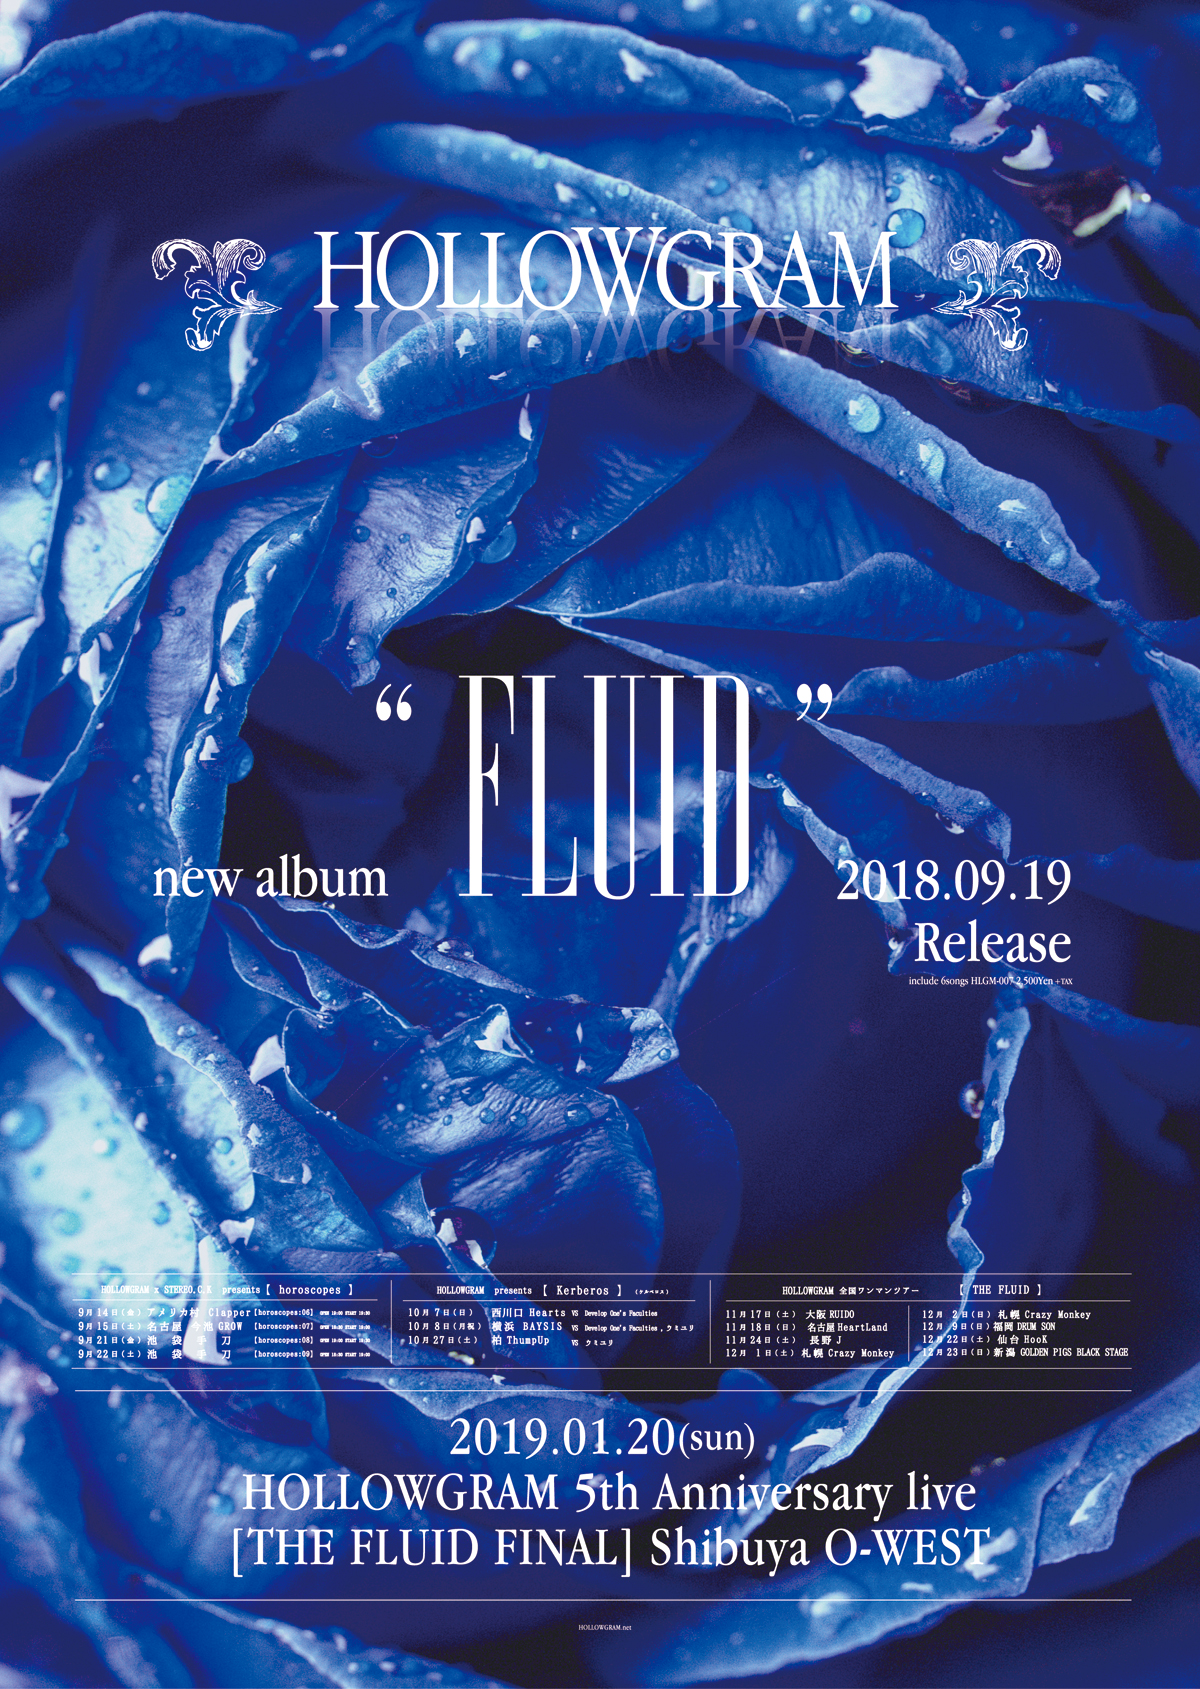 "HOLLOWGRAM - HOLLOWGRAM new album""FLUID"" 2018.09.19 Release / 2019.01.20(sun) HOLLOWGRAM 5th Anniversary [THE FLUID FINAL] Shibuya O-WEST 